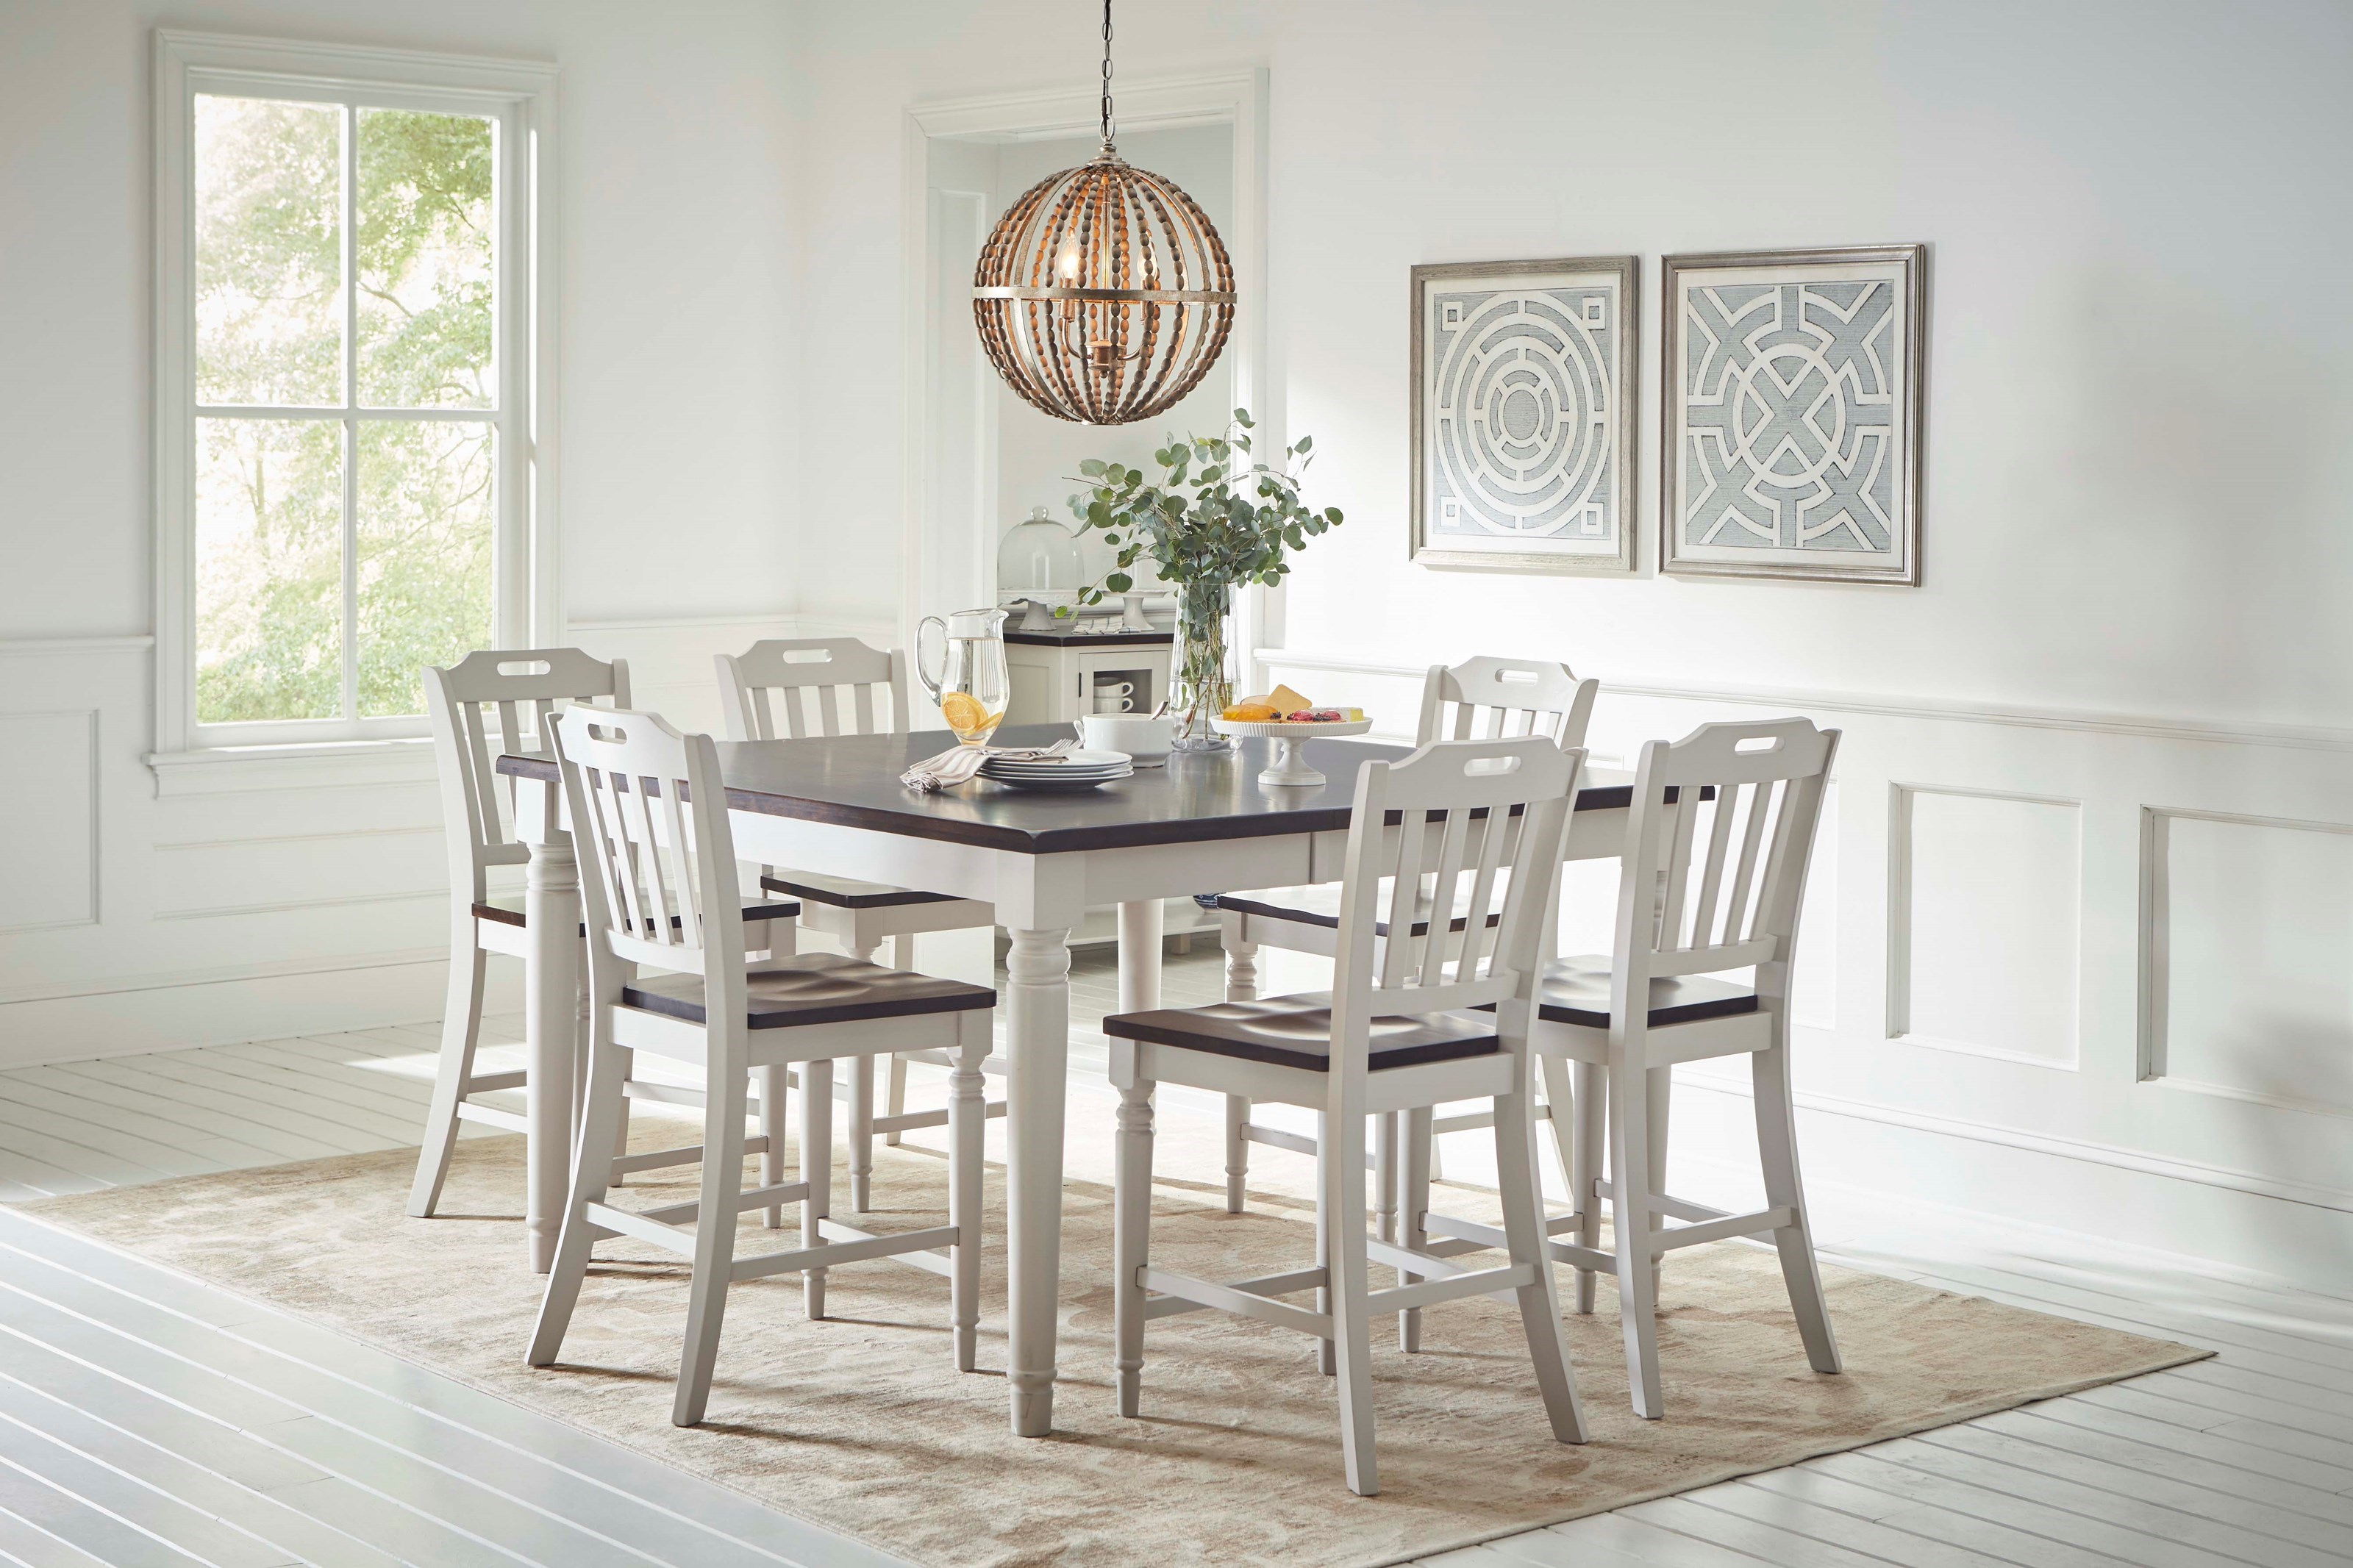 Jofran Orchard ParkCounter Height Dining Table With 8 Chairs